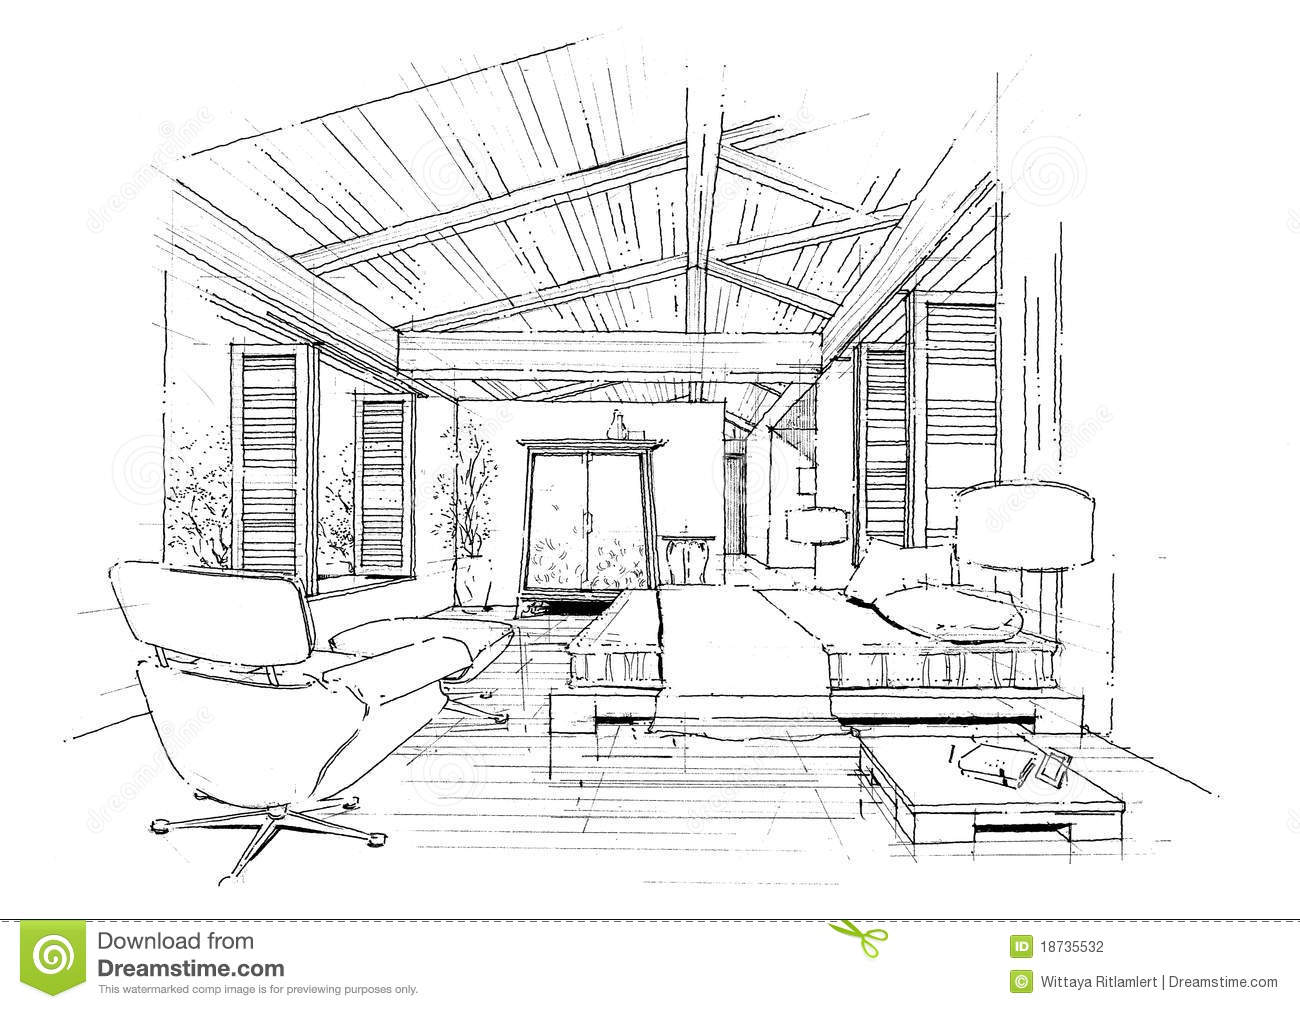 This Immaculate 2 5million 4 Bedroom Eco Home Built Hill Hidden Underneath Owners Lawn furthermore 2 Bedroom furthermore Floorplans besides Hwepl14036 in addition Stock Photography Interior Architecture Construction Landscape Sketc Image18735532. on luxury 2 bedroom house plans